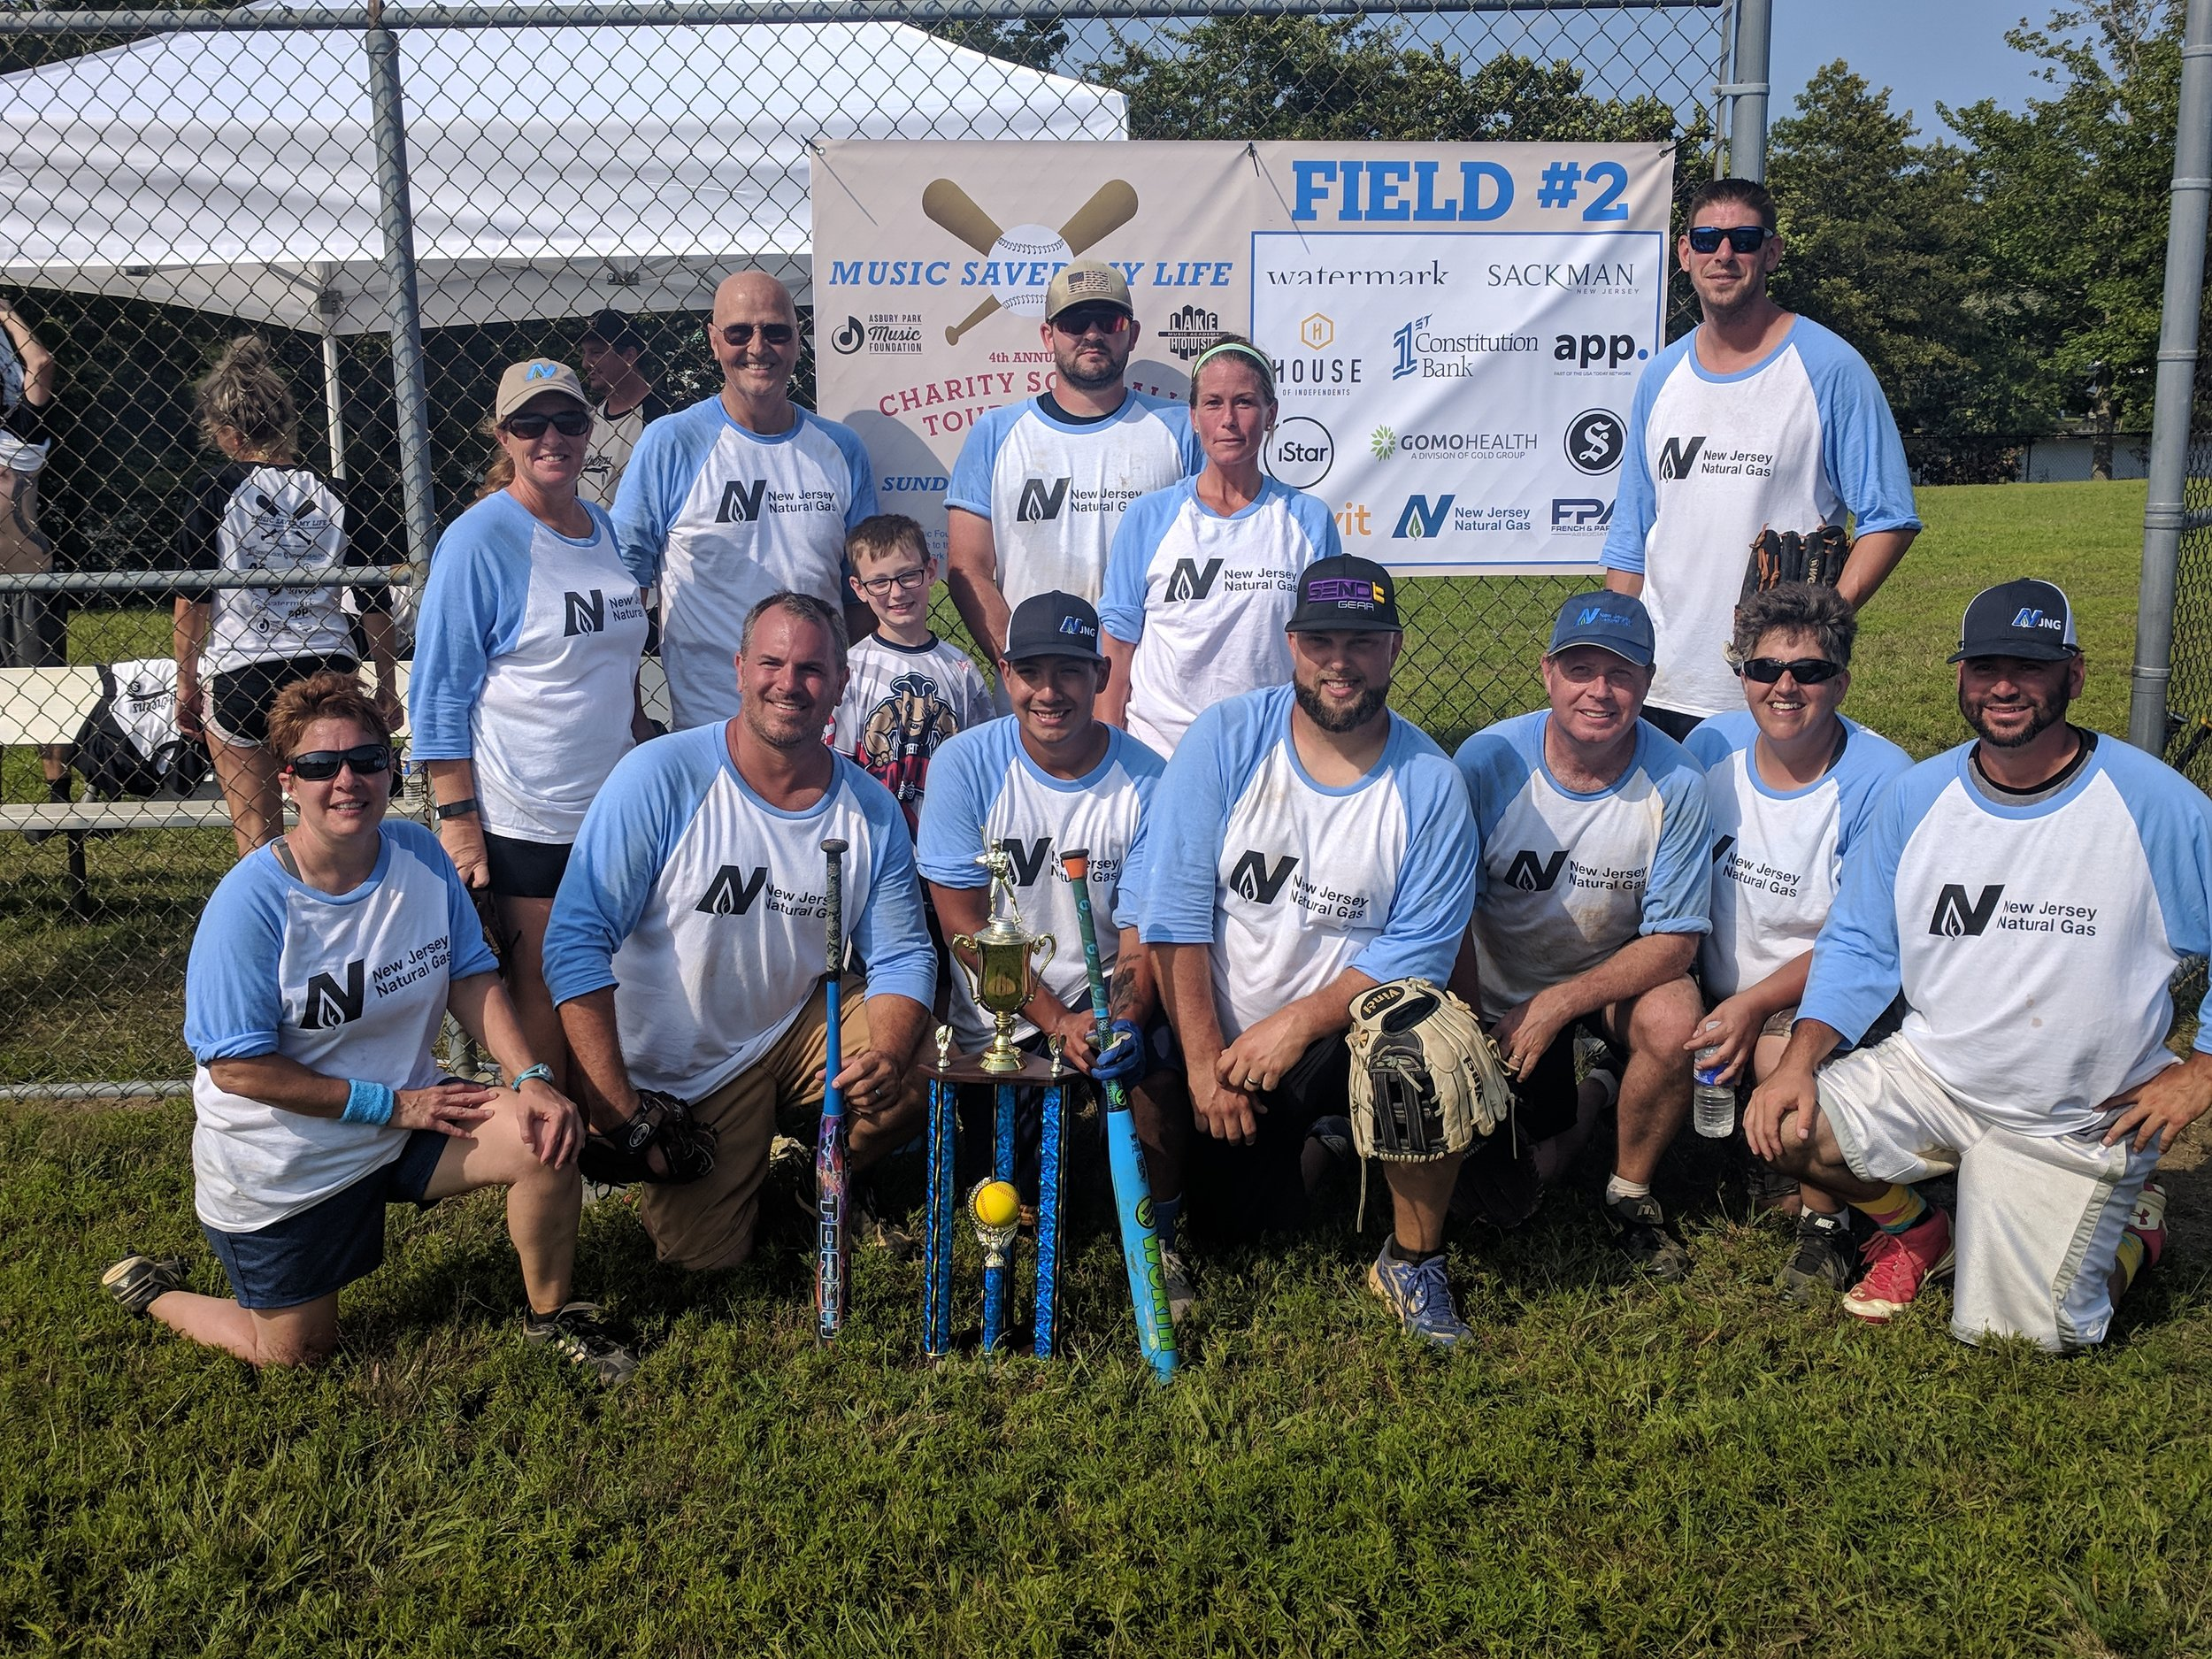 Congratulations to NJ Natural Gas on retaining the trophy for a second year at the 4th Annual Music Saved My Life Charity Softball Tournament!